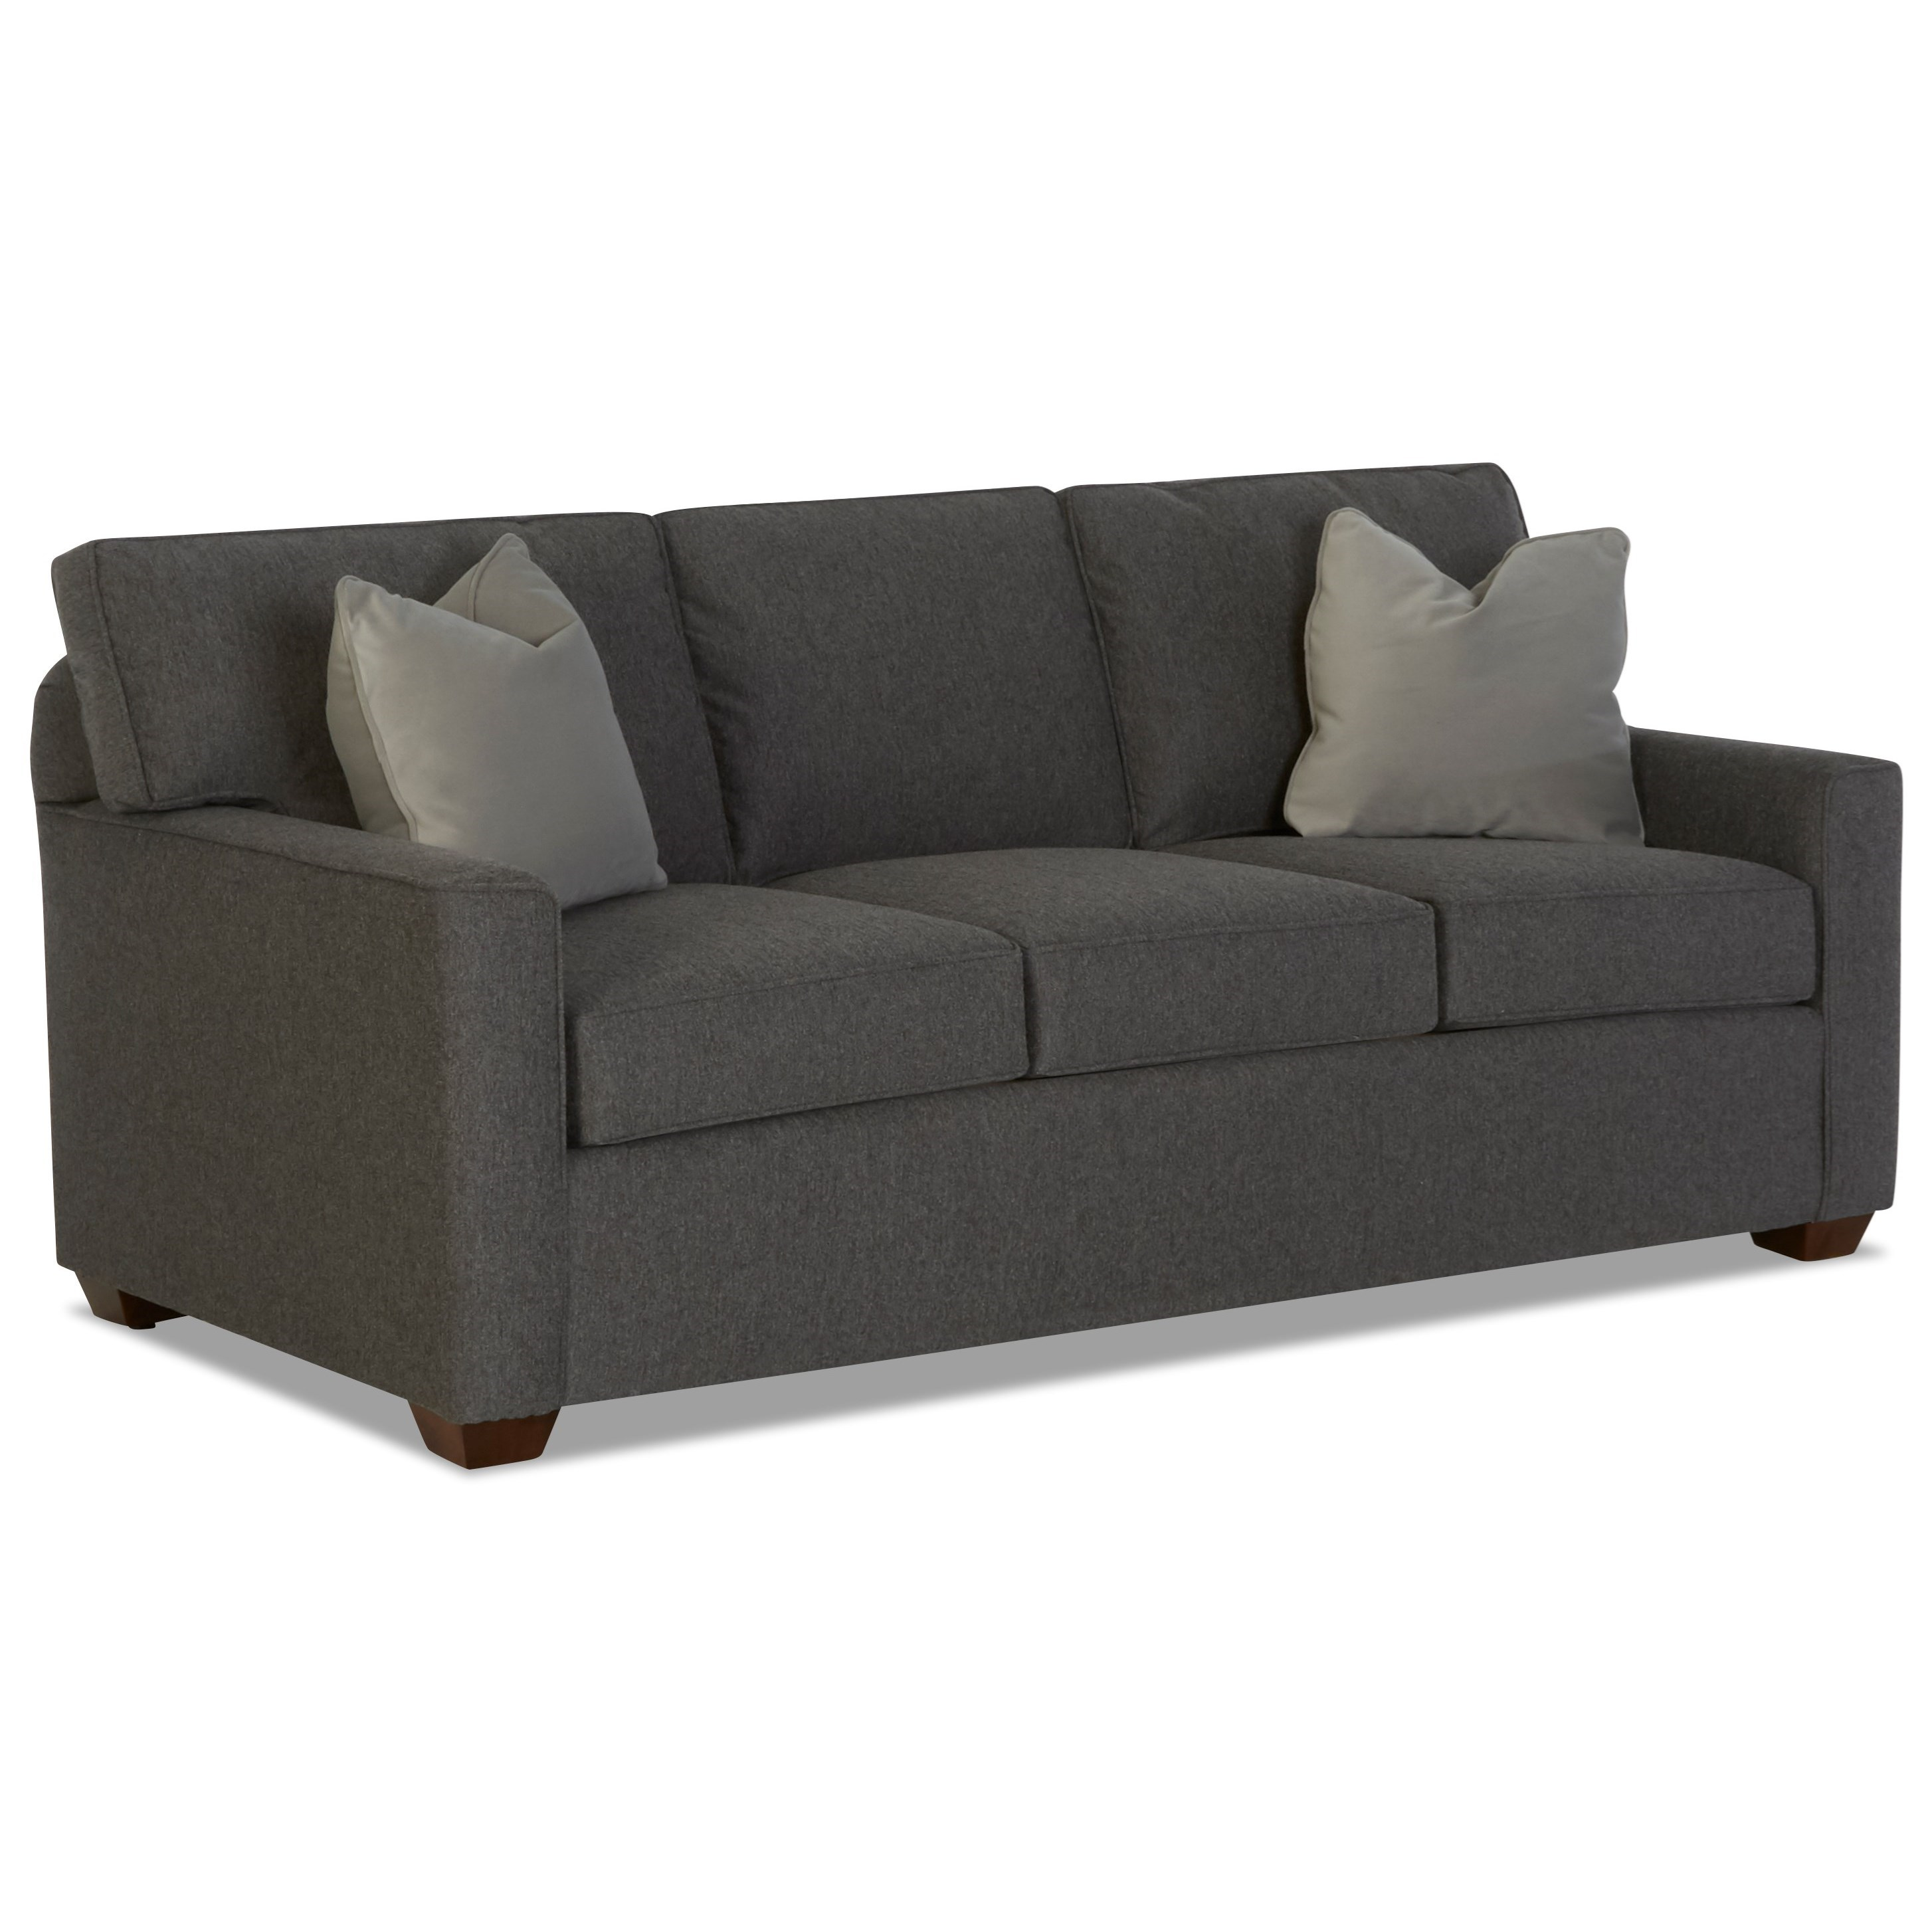 Pantego Dreamquest Sleeper Sofa by Klaussner at Northeast Factory Direct